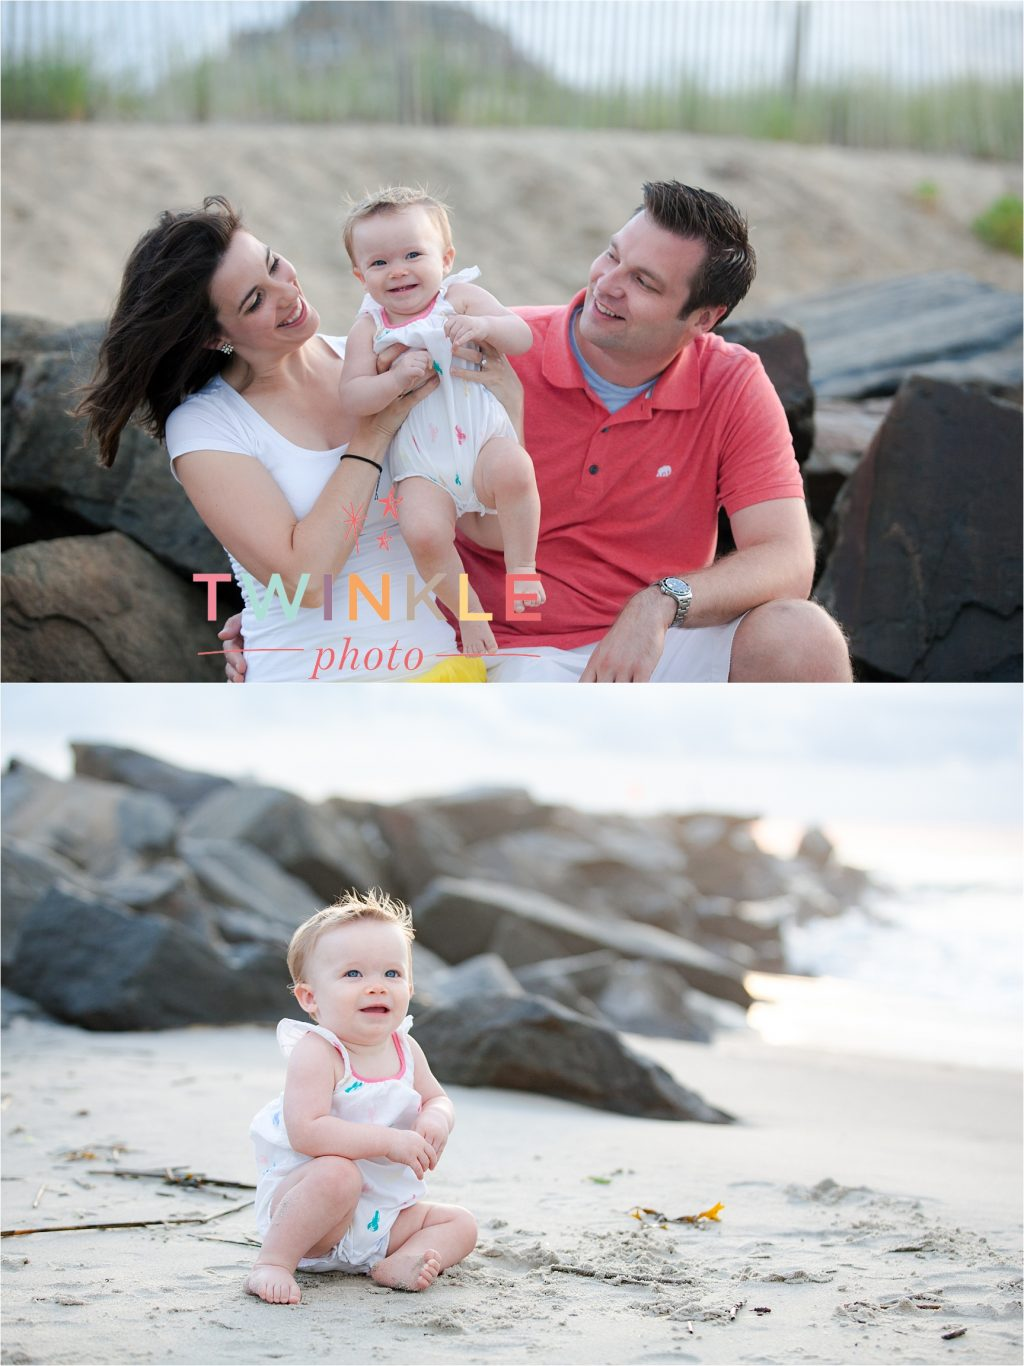 OCNJ Ocean City NJ New Jersey Beach Family Photography Photographer Twinkle Photo-03